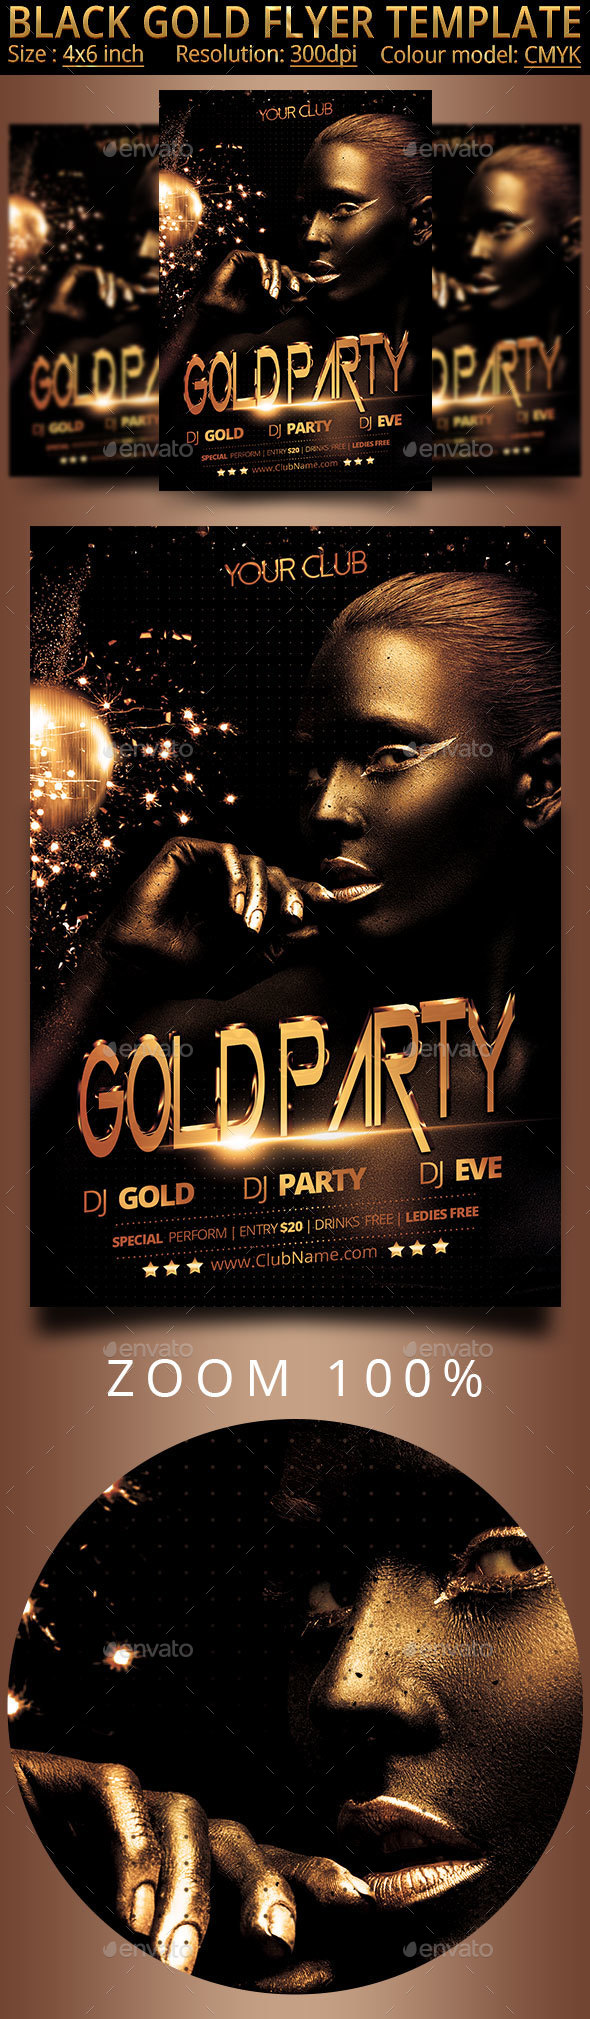 Gold Flyer Black Template - Clubs & Parties Events